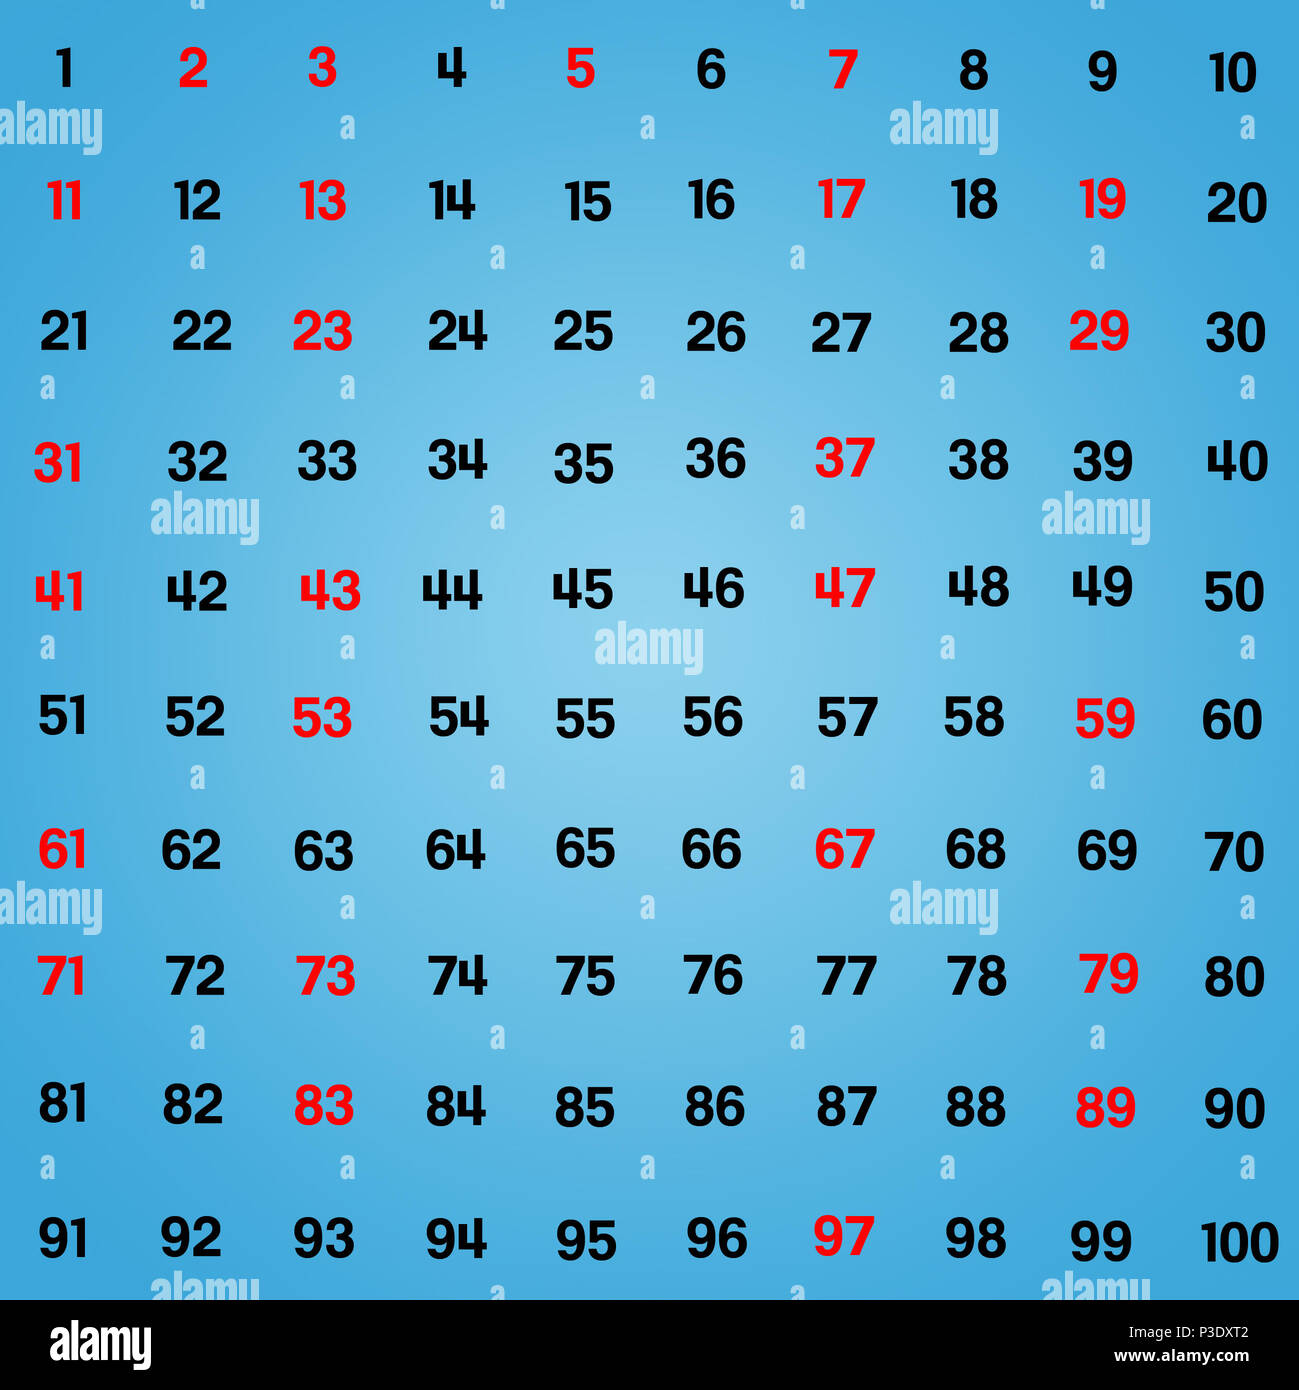 infographic table with first 25 prime numbers in the range from 1 to 100 - Stock Image